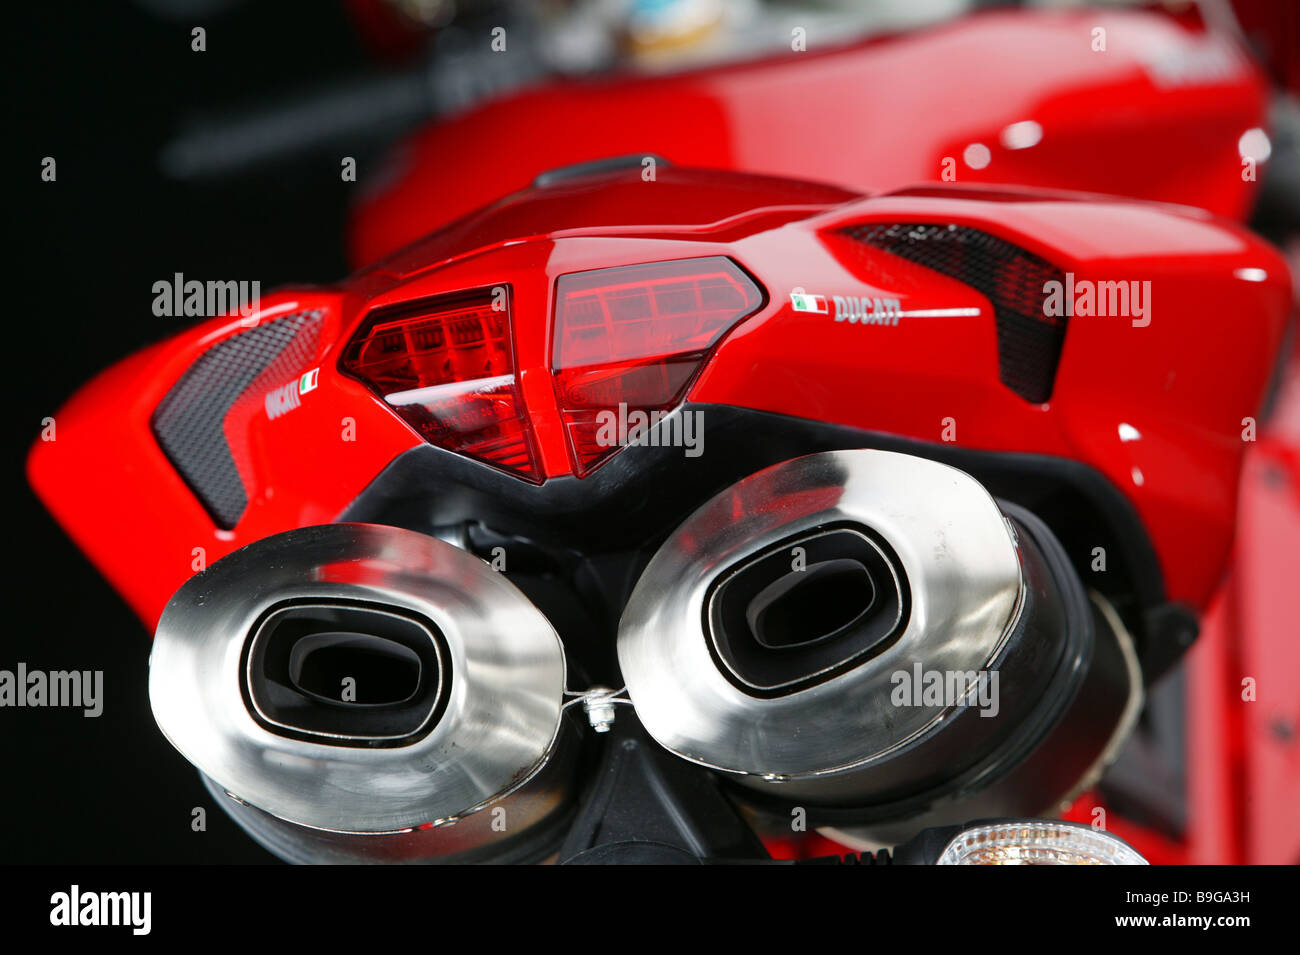 Motorcycle Ducati Red Backview Detail Bicycle Motorcycle Stock Photo